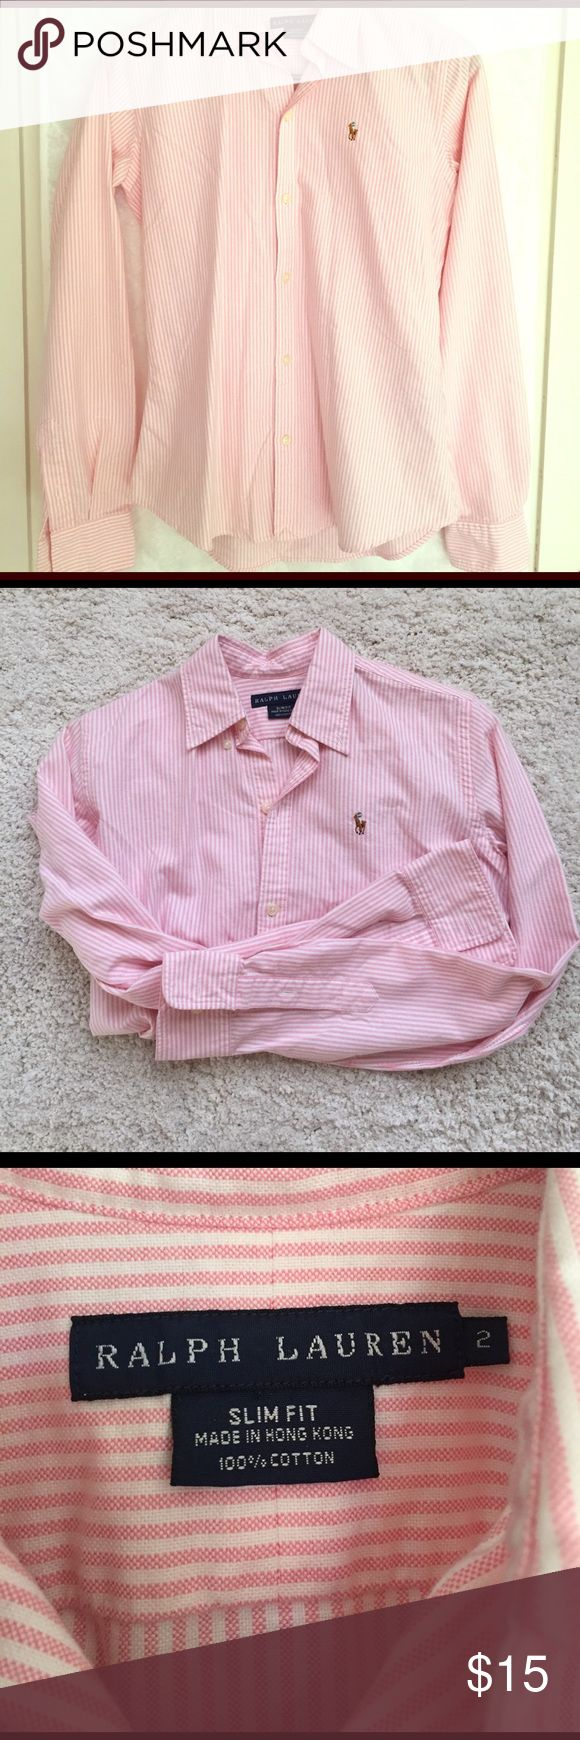 💵 SALE 💵 POLO Ralph Lauren Long Sleeve Button Up Pretty pink and white striped button up shirt perfect for the working woman 👚 Like new condition. Slim fit, size 2. Buttons on the sleeves allows you to roll them up and show off your bracelets! Polo by Ralph Lauren Tops Button Down Shirts